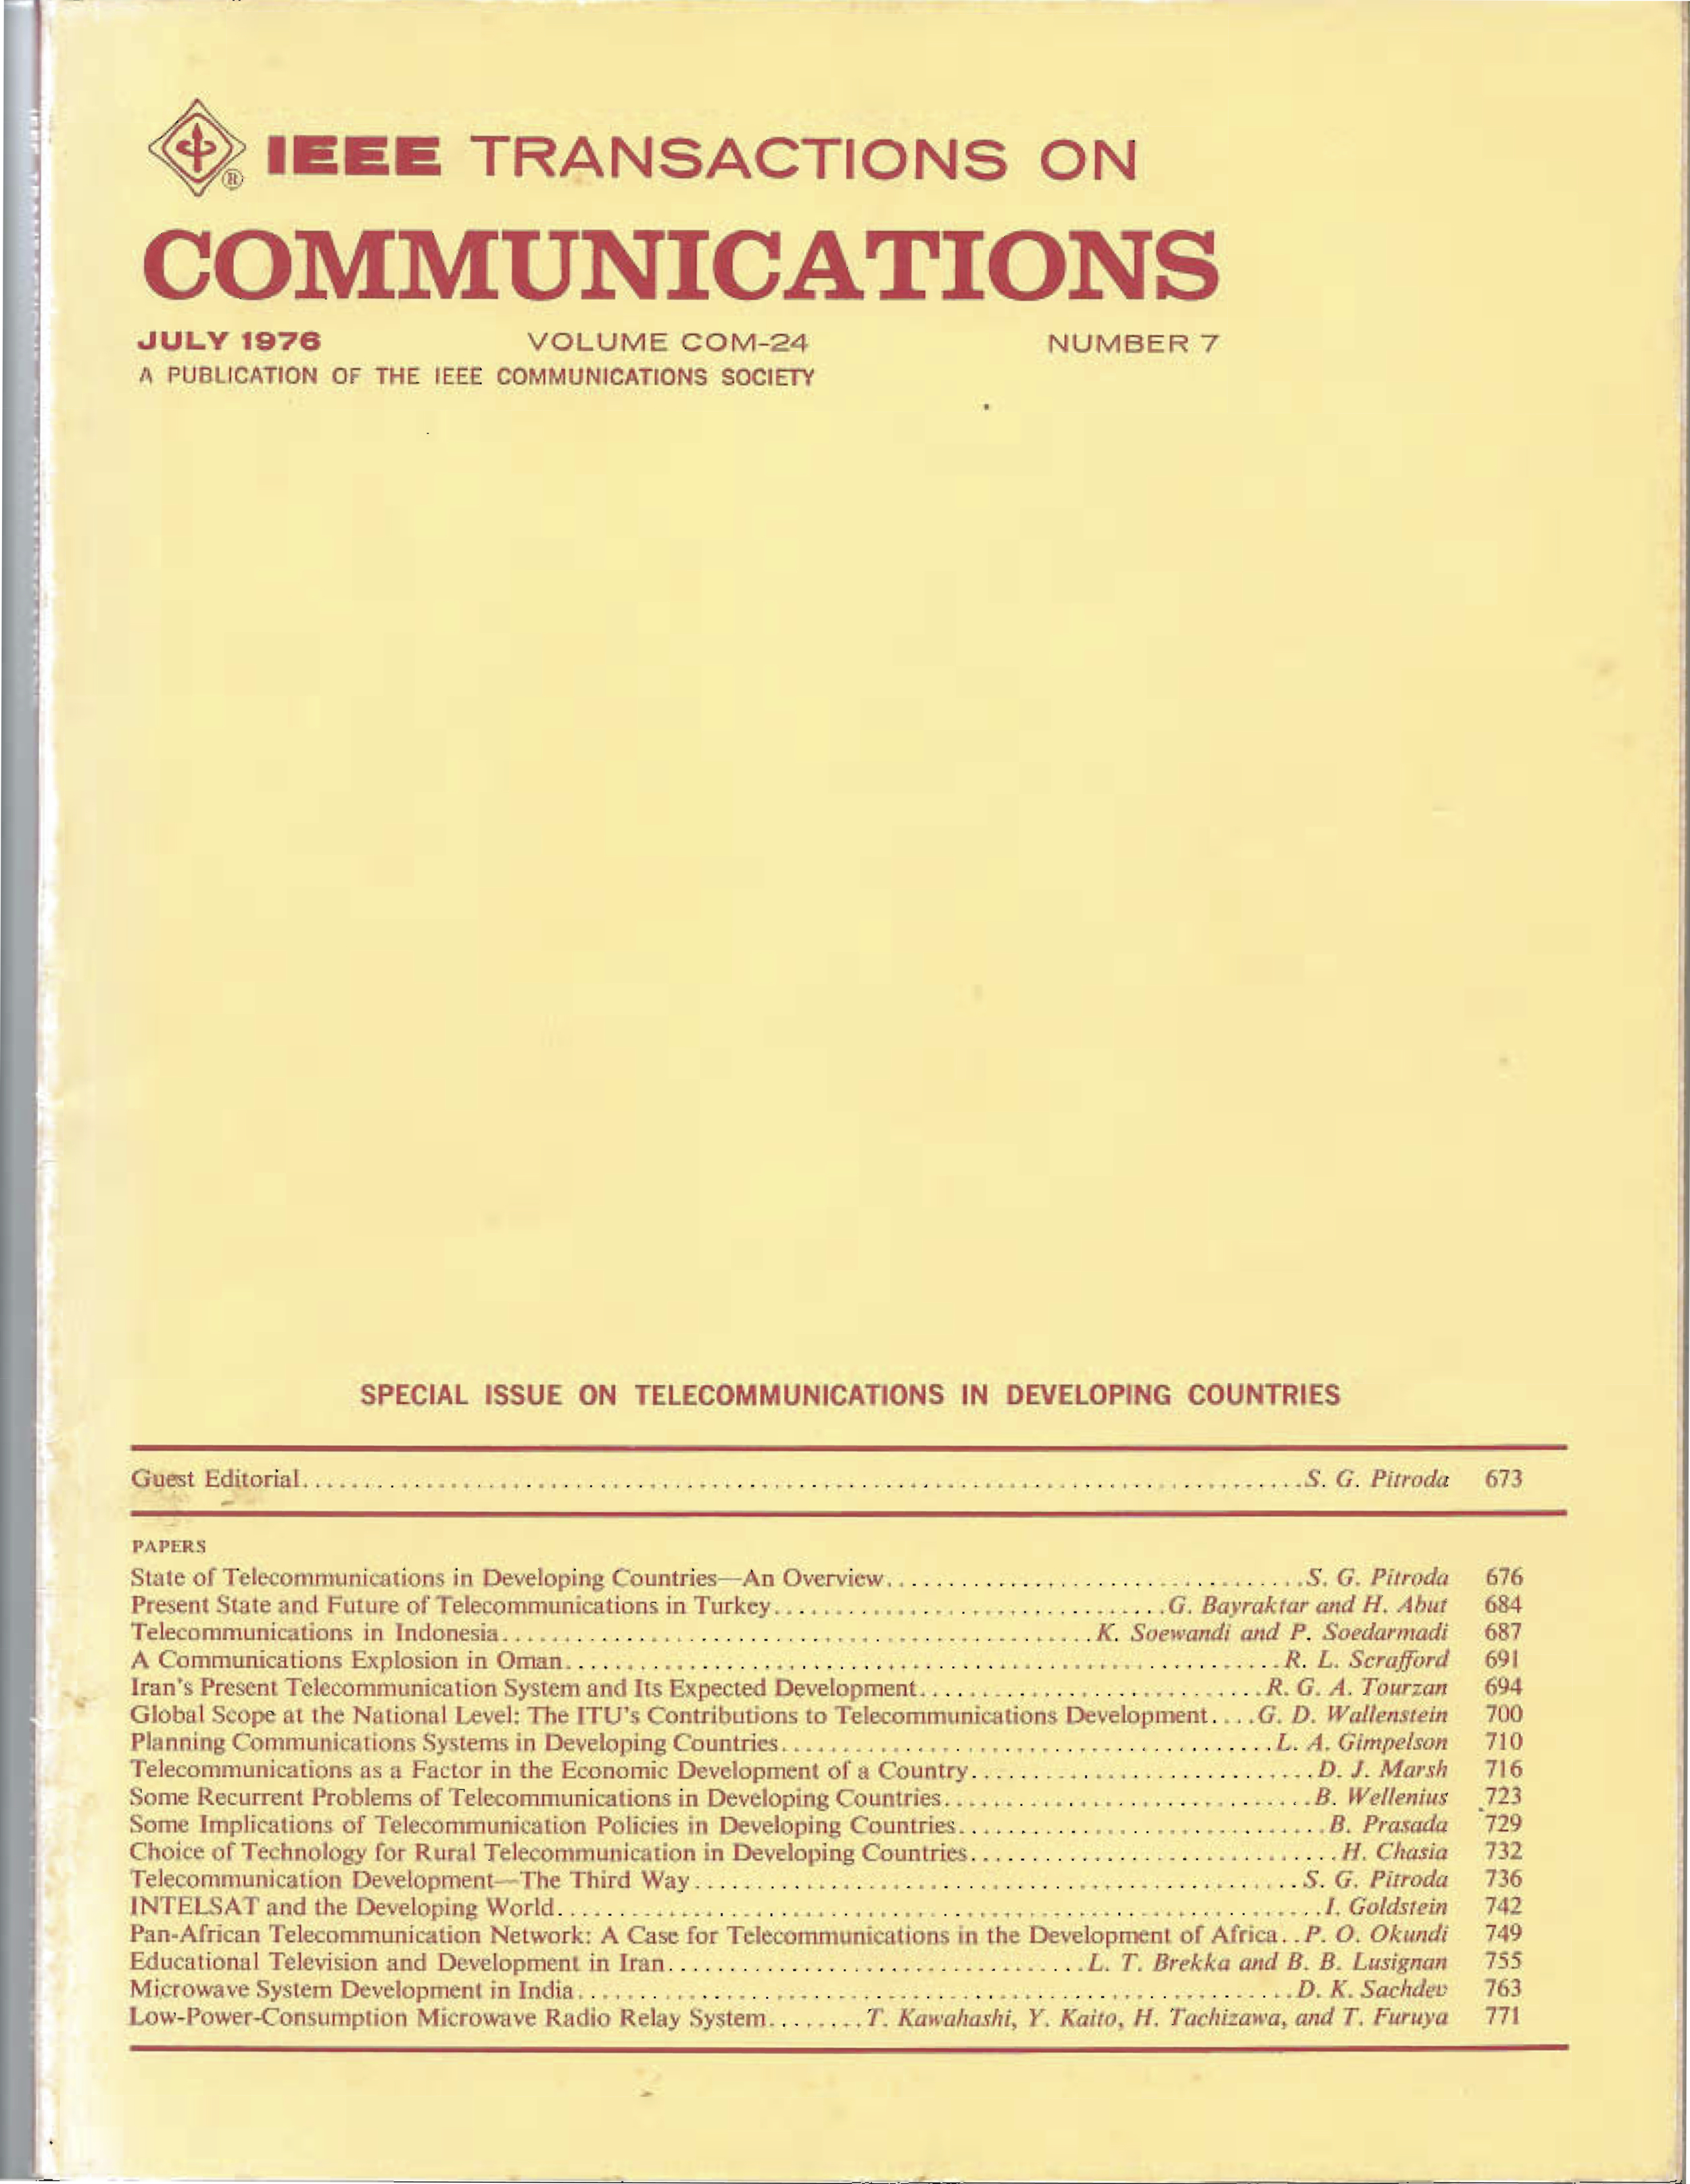 IEEE Transactions on Communications - Part 1.jpg